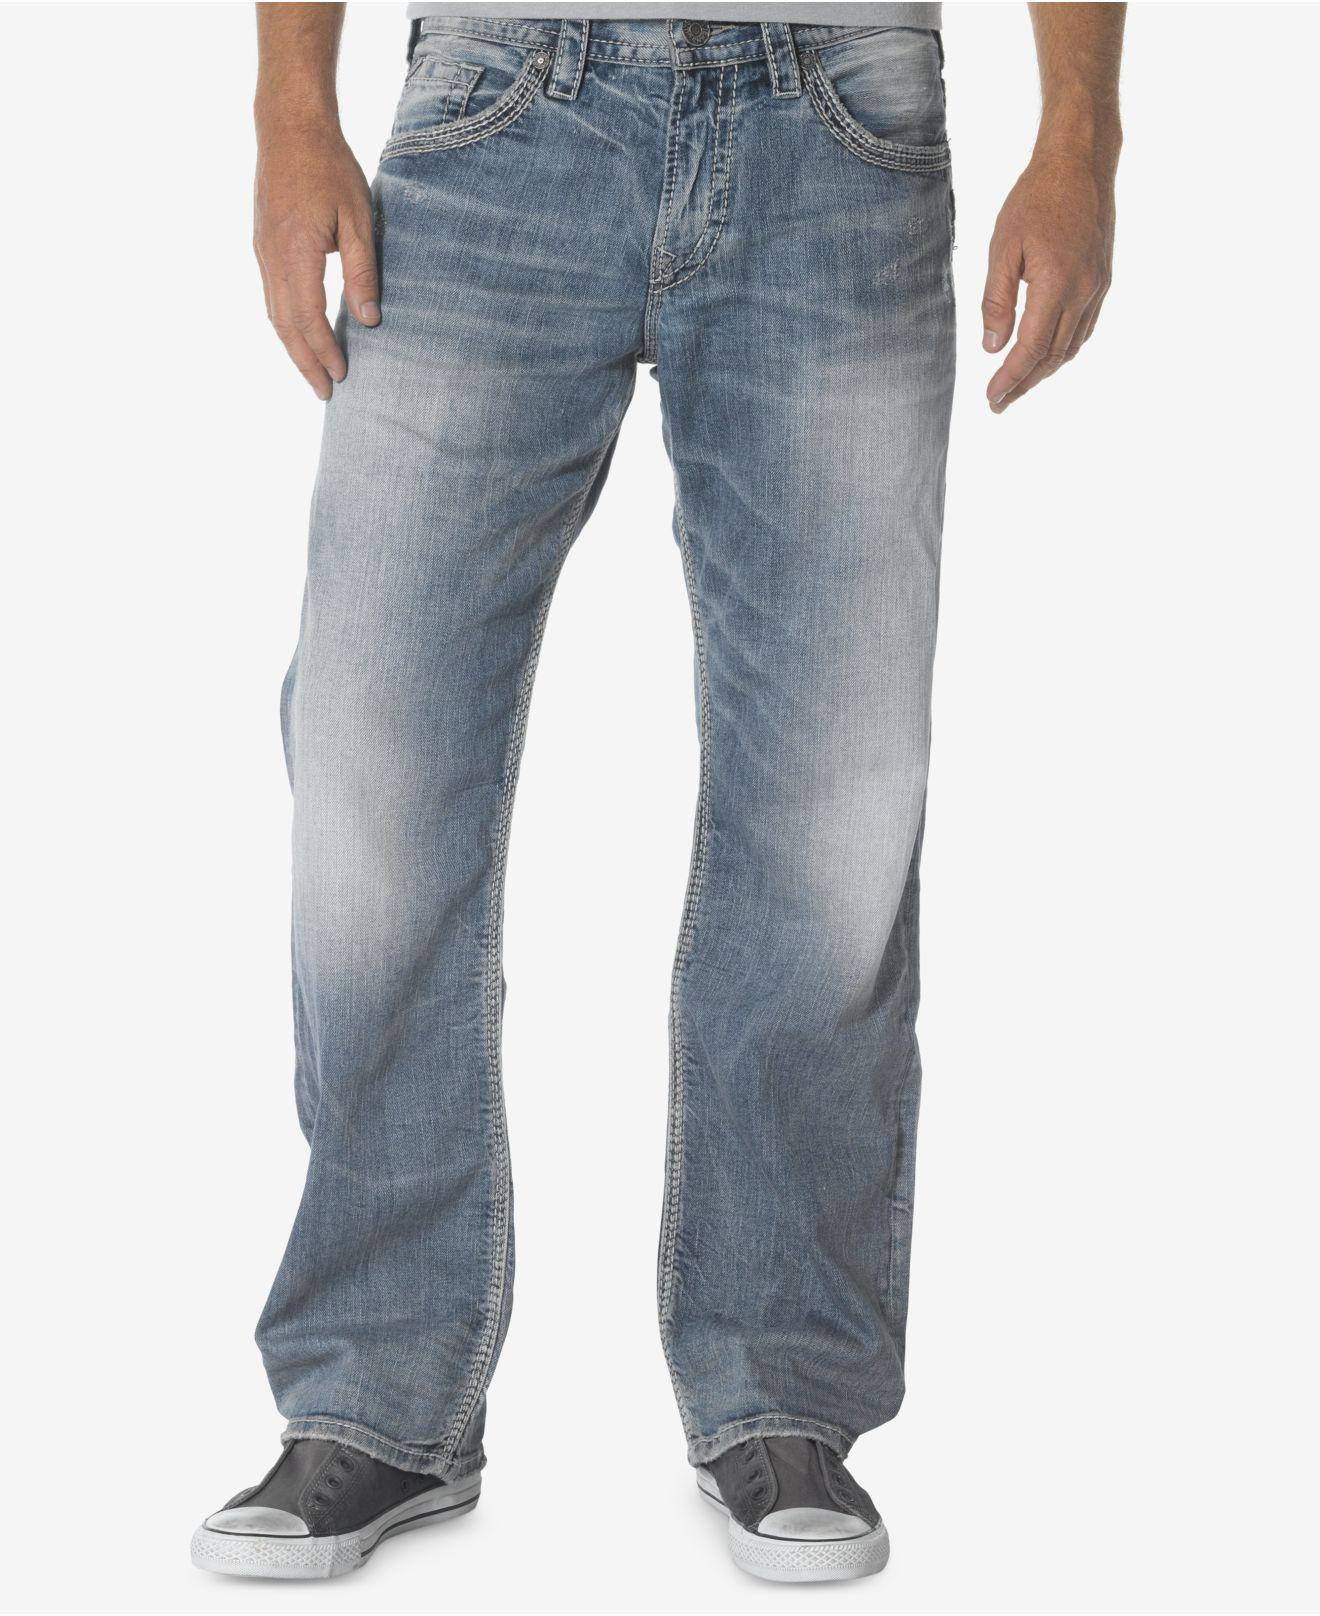 6fe3b6c8 Silver Jeans Co. Jeans, Gordie Straight-leg in Gray for Men - Lyst